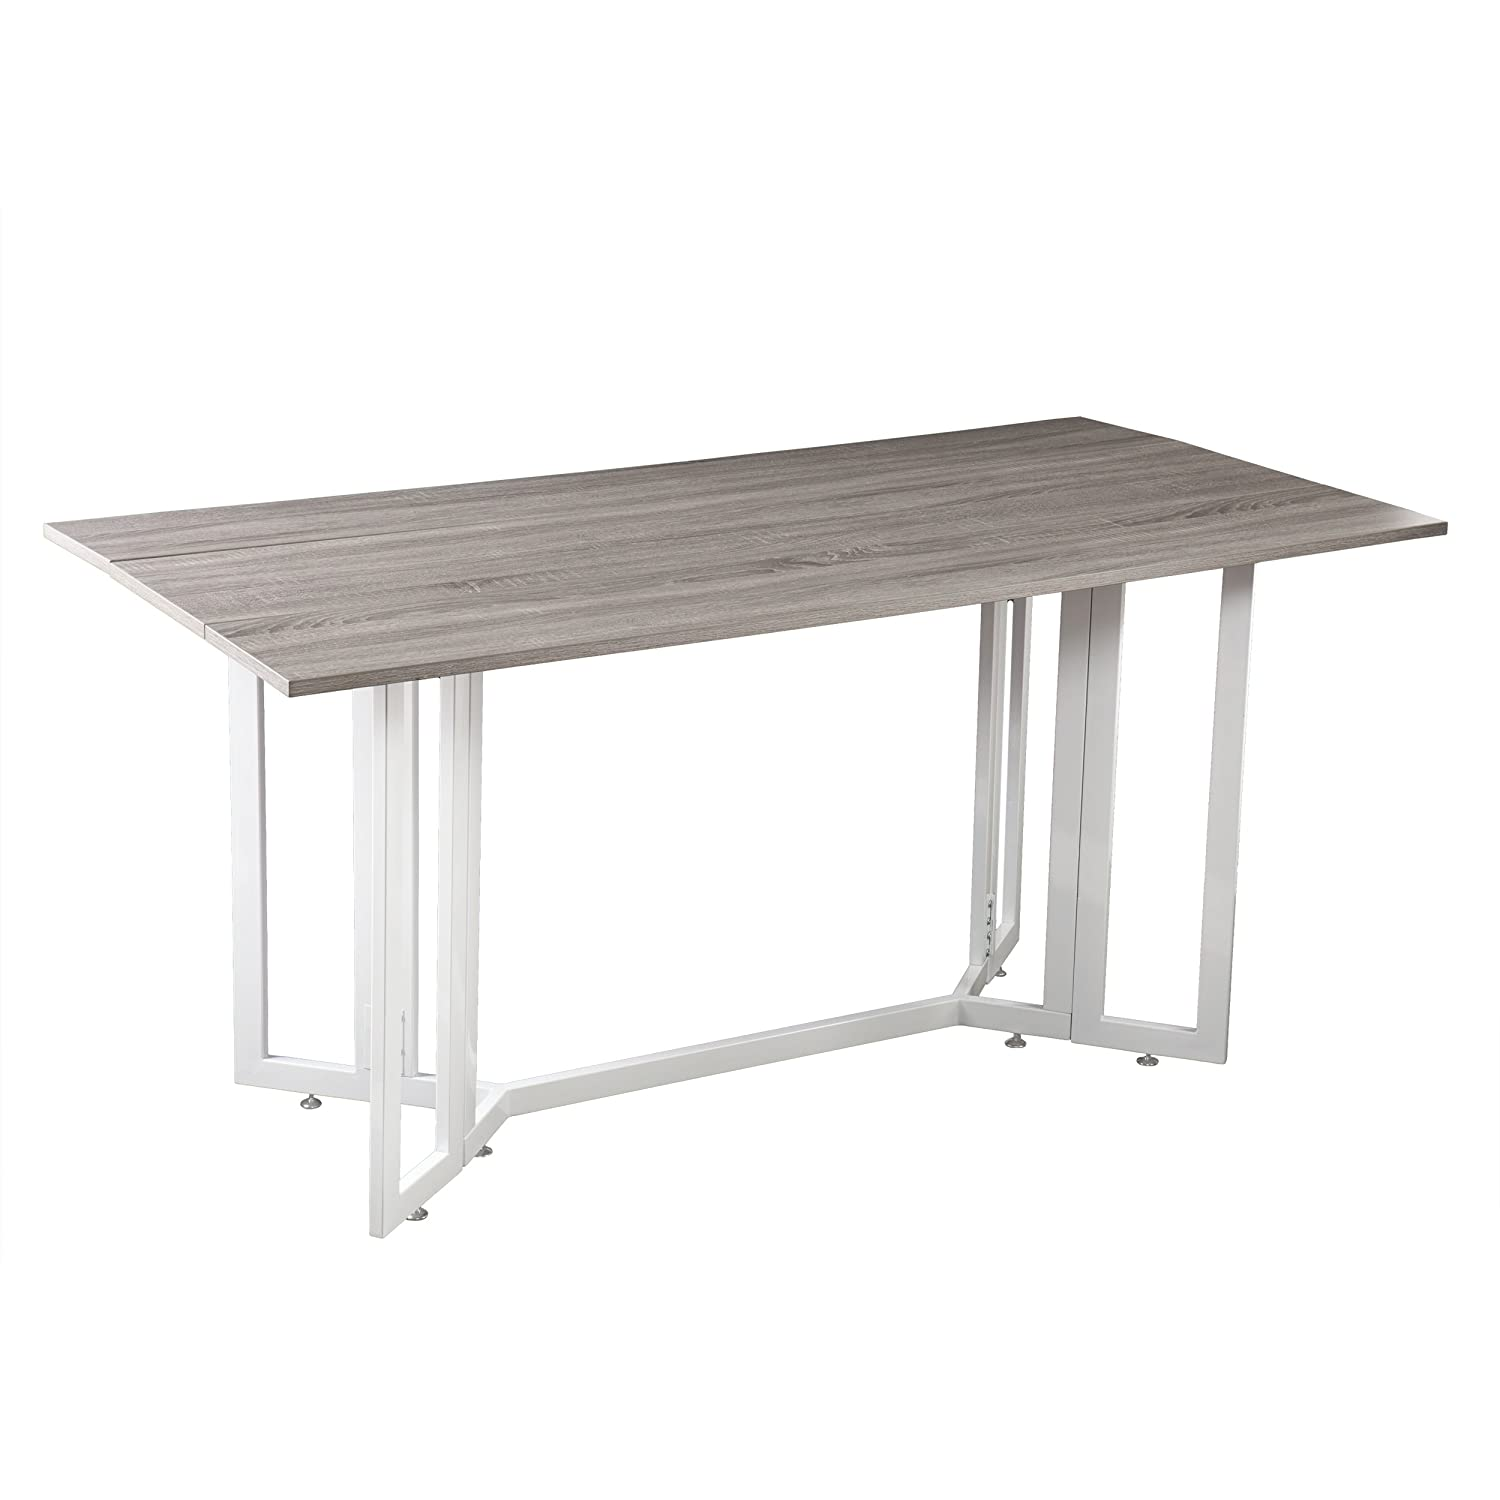 Driness Drop Leaf Console Dining Table – Weathered Gray w White Metal Base – Seats 4 to 6